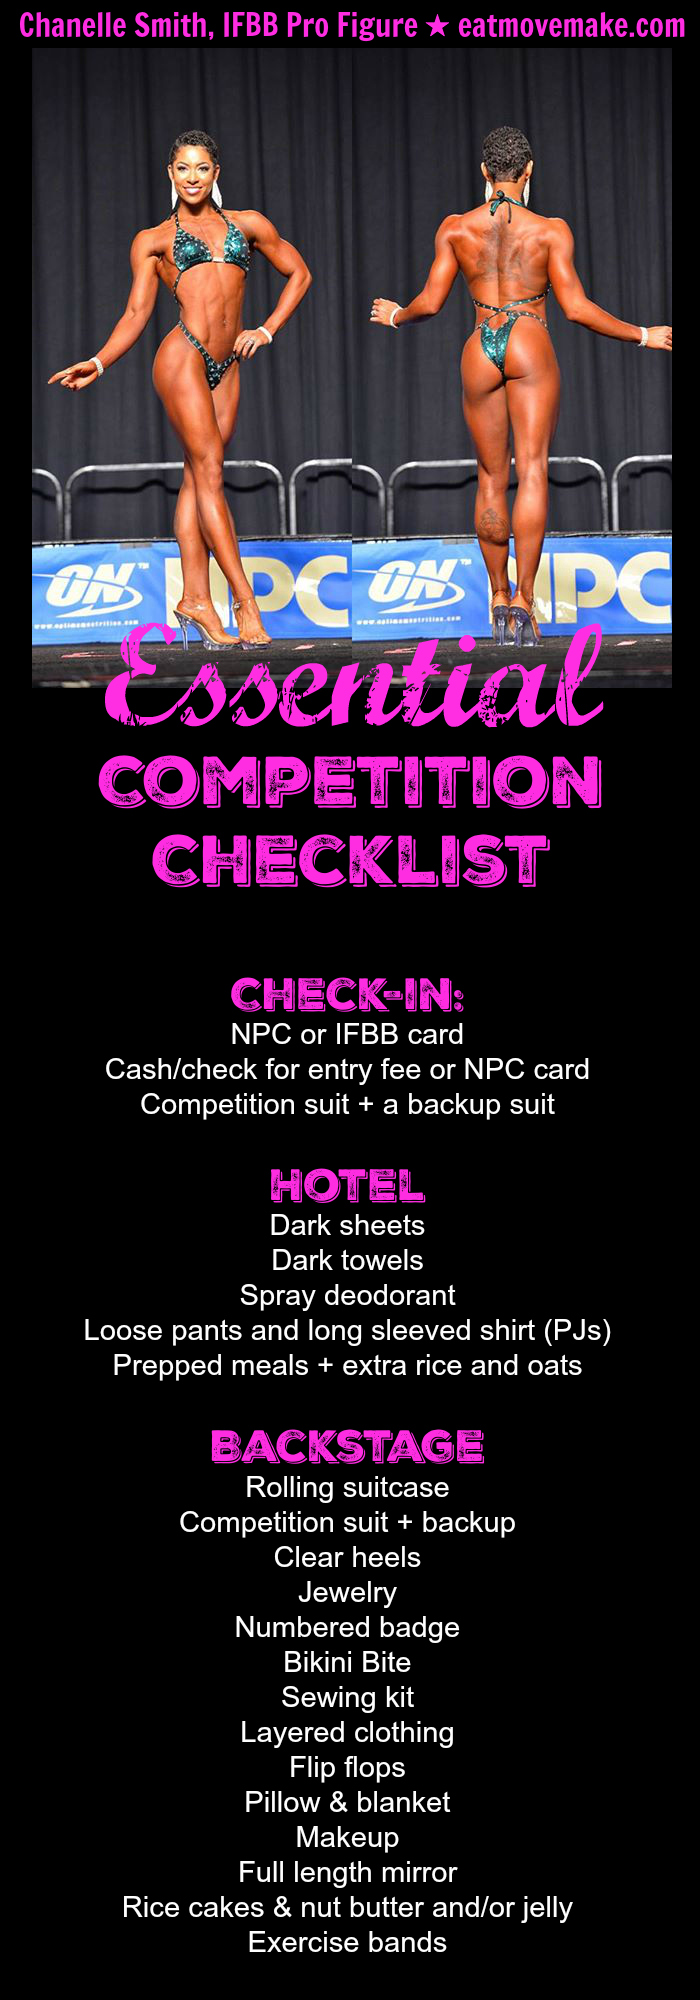 Everything you need to bring with you for a competition - from contest check-in, to your hotel room, to backstage! Click to read the rest of the post, with a checklist of what to do in the months prior to the competition. | eatmovemake.com